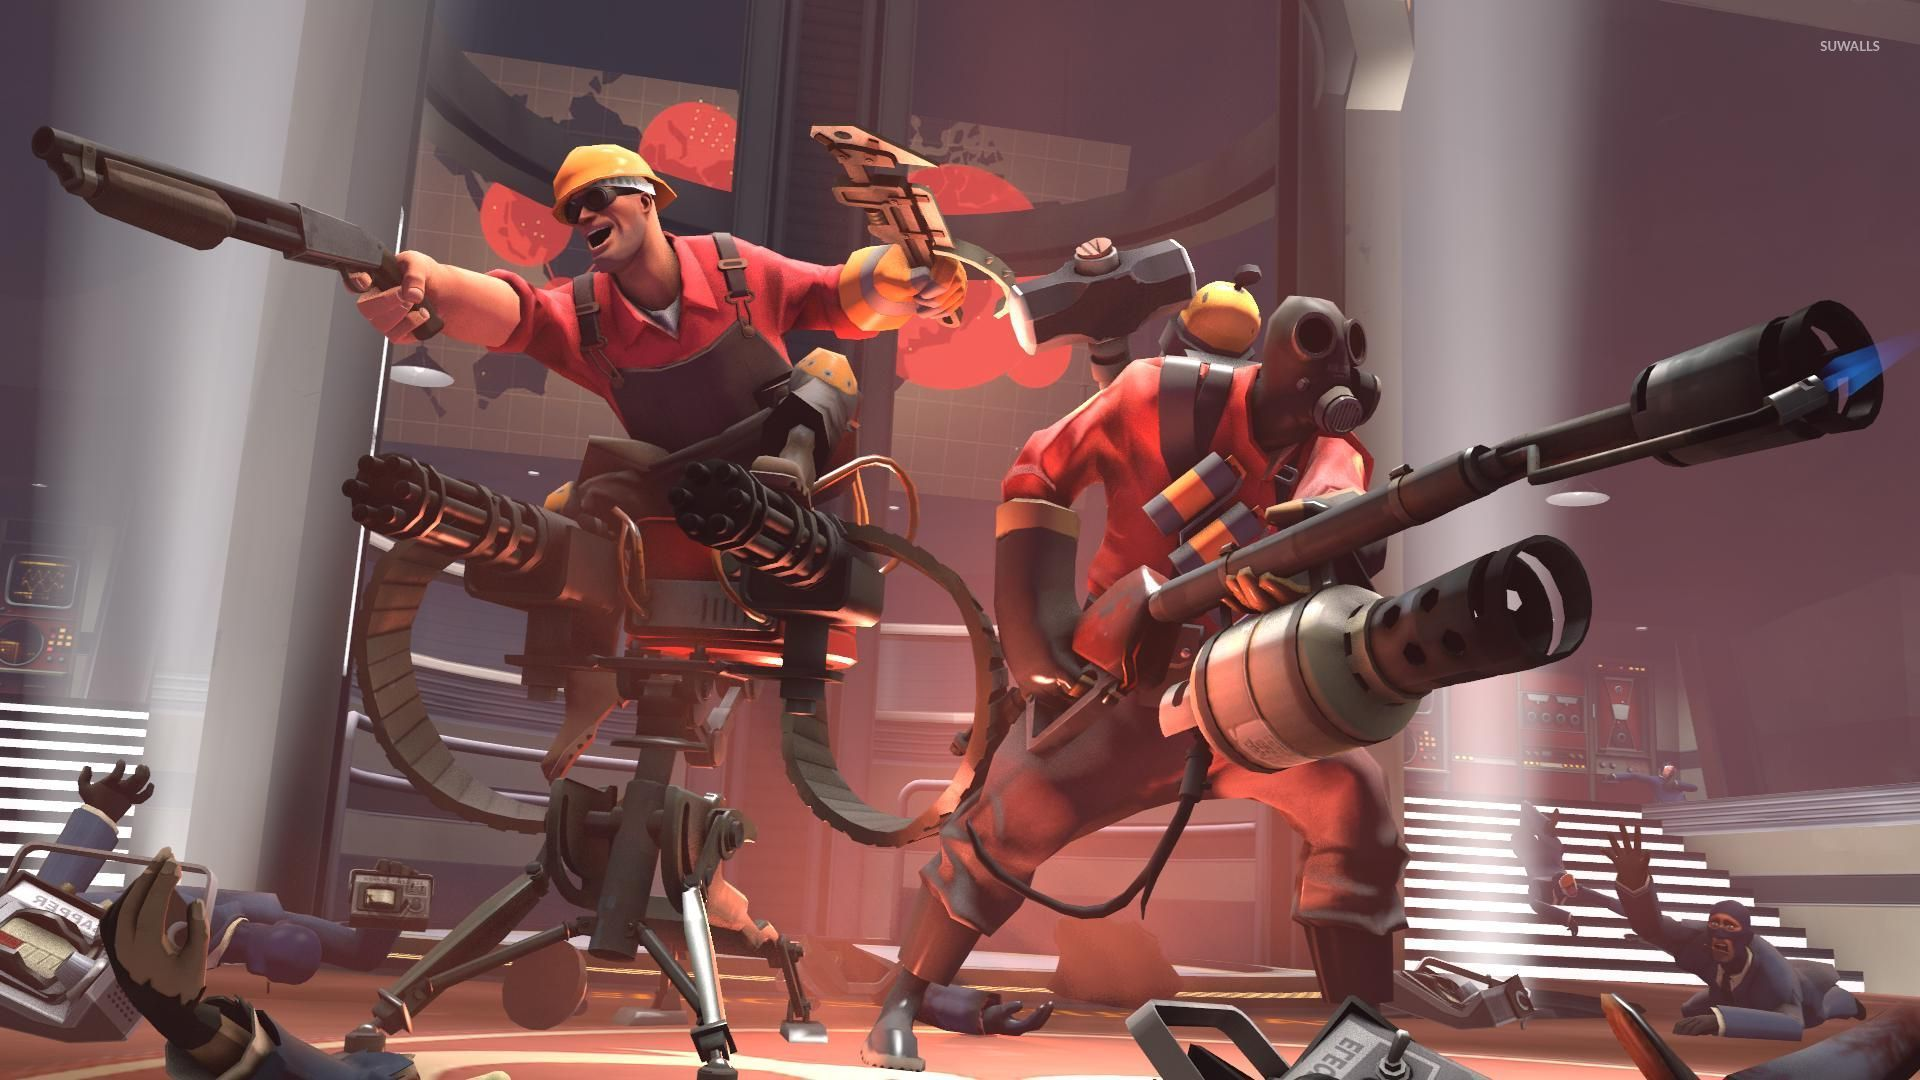 pics photos team fortress 2 wallpaper 1920x1080